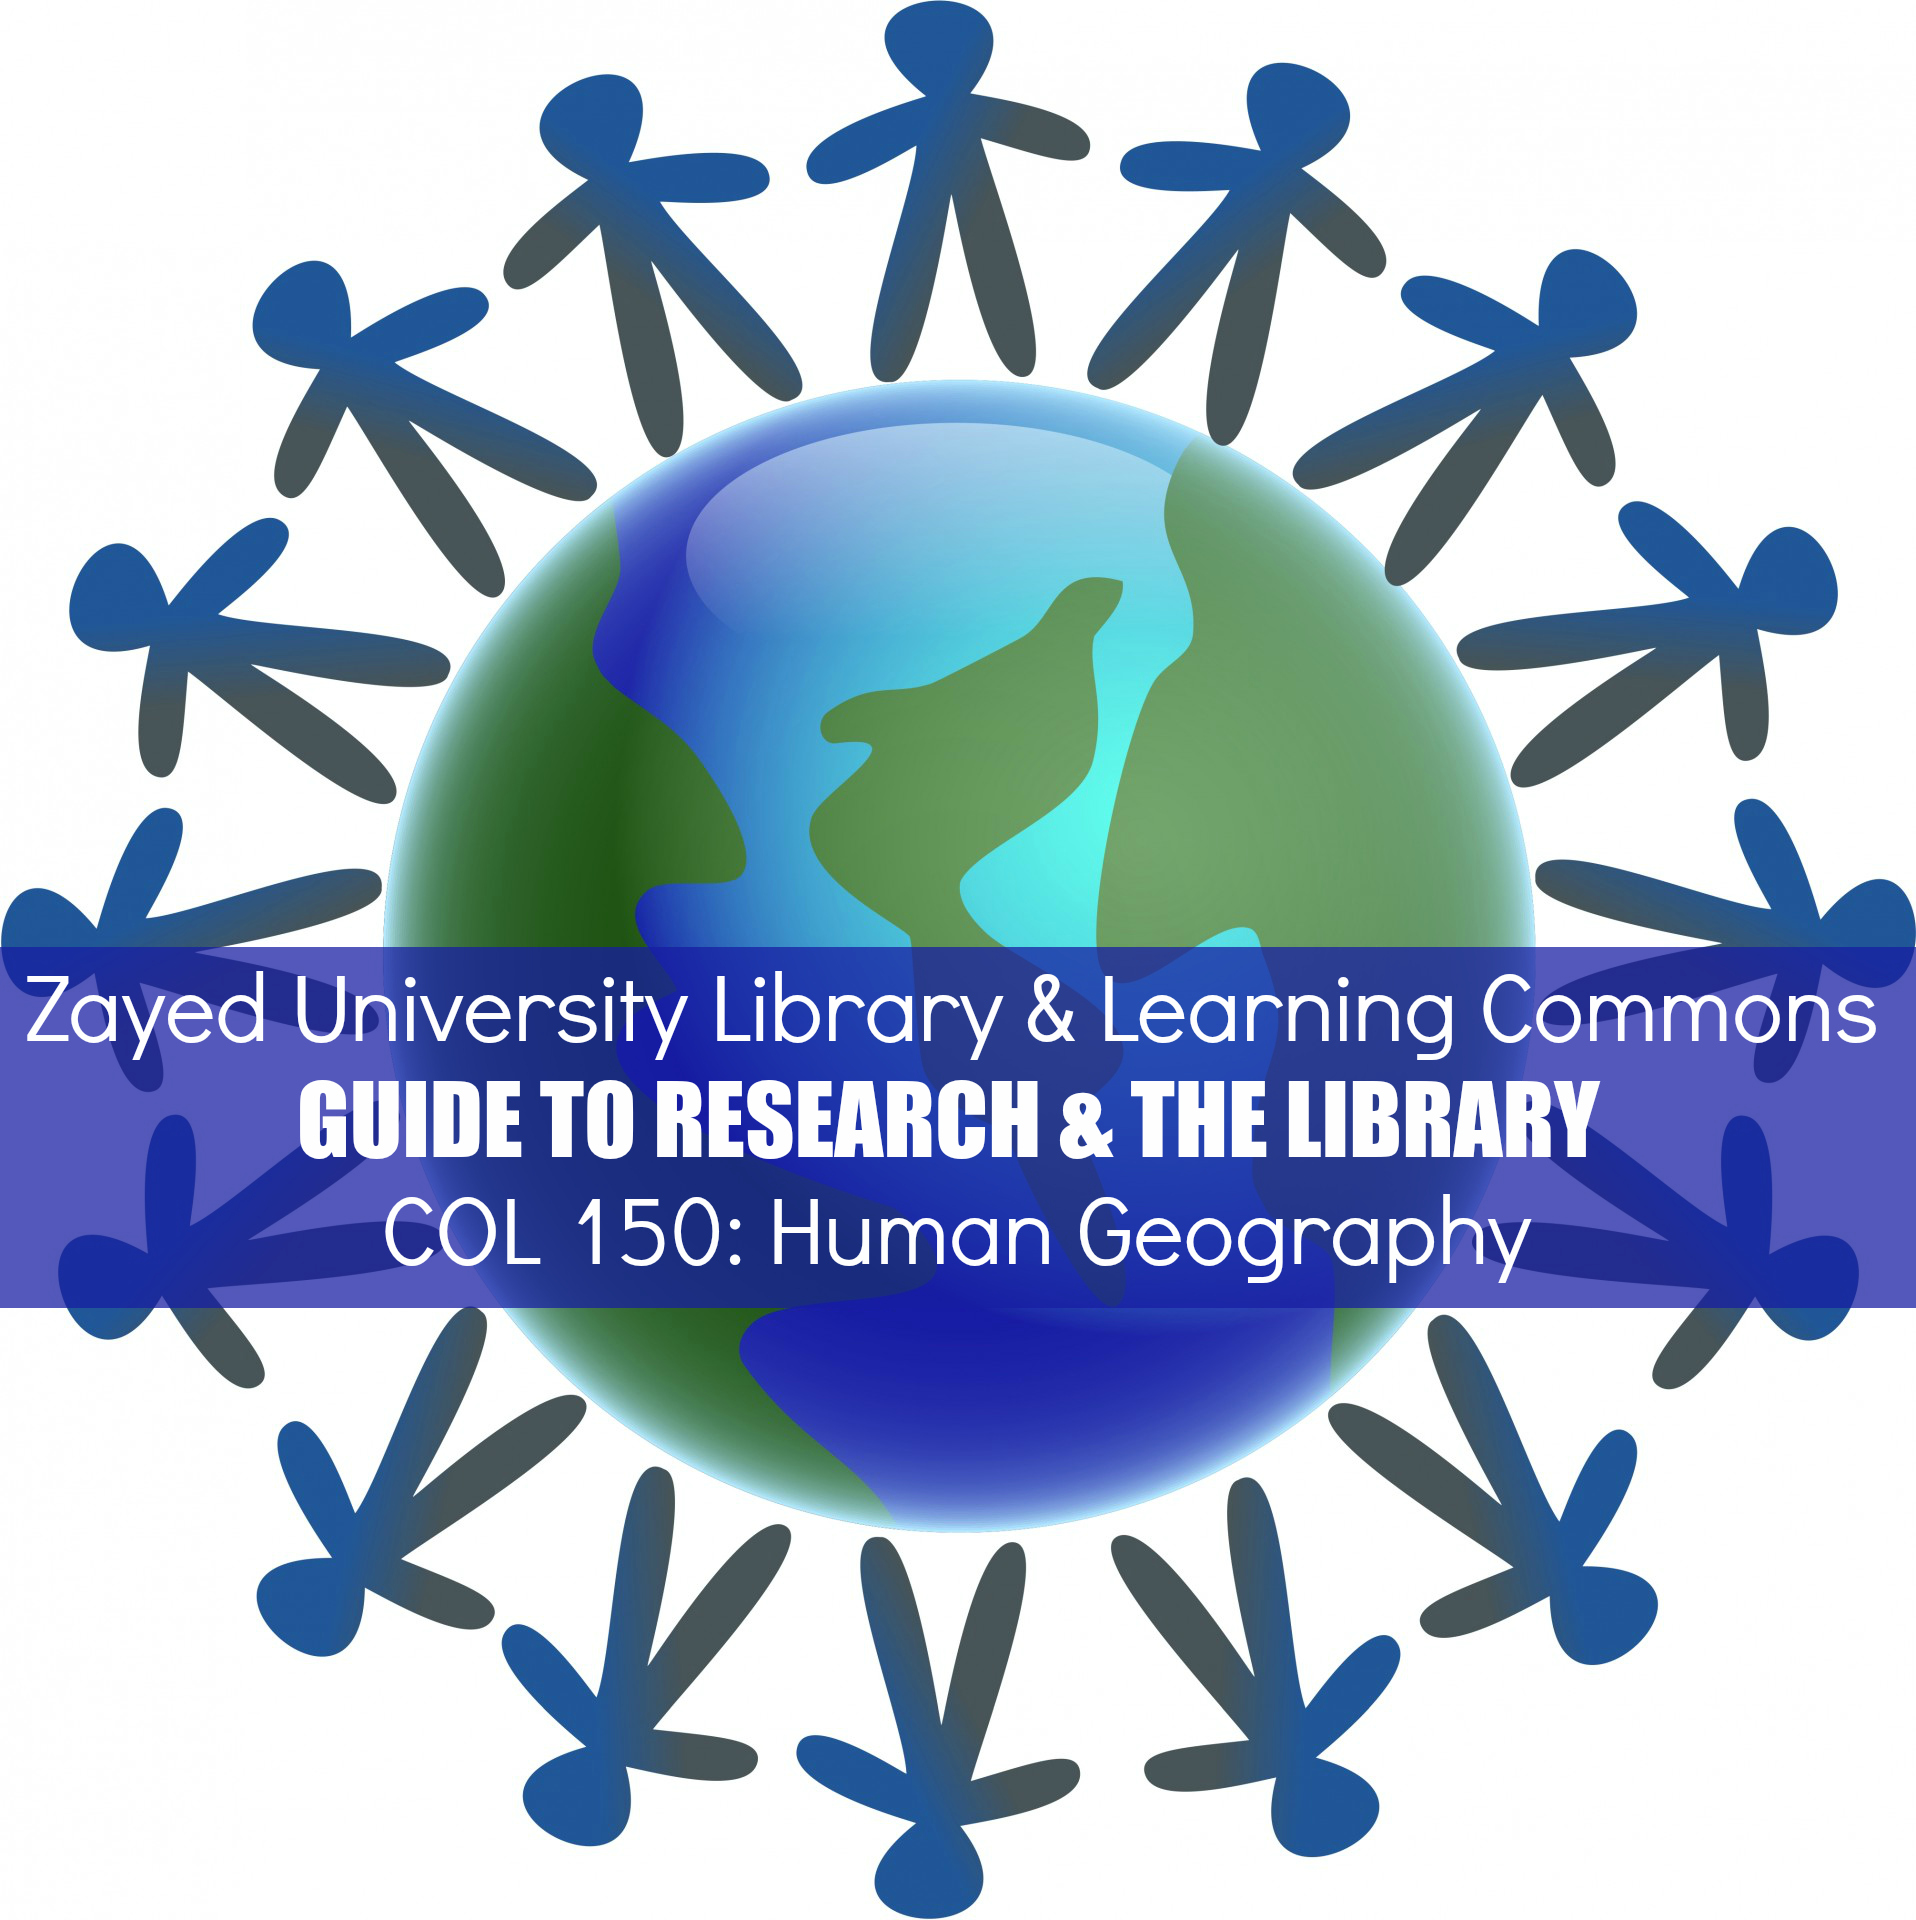 ... help students enrolled in GEN 150: Human Geography find and access  resources for their class project. Explore the information in this guide to  find ...